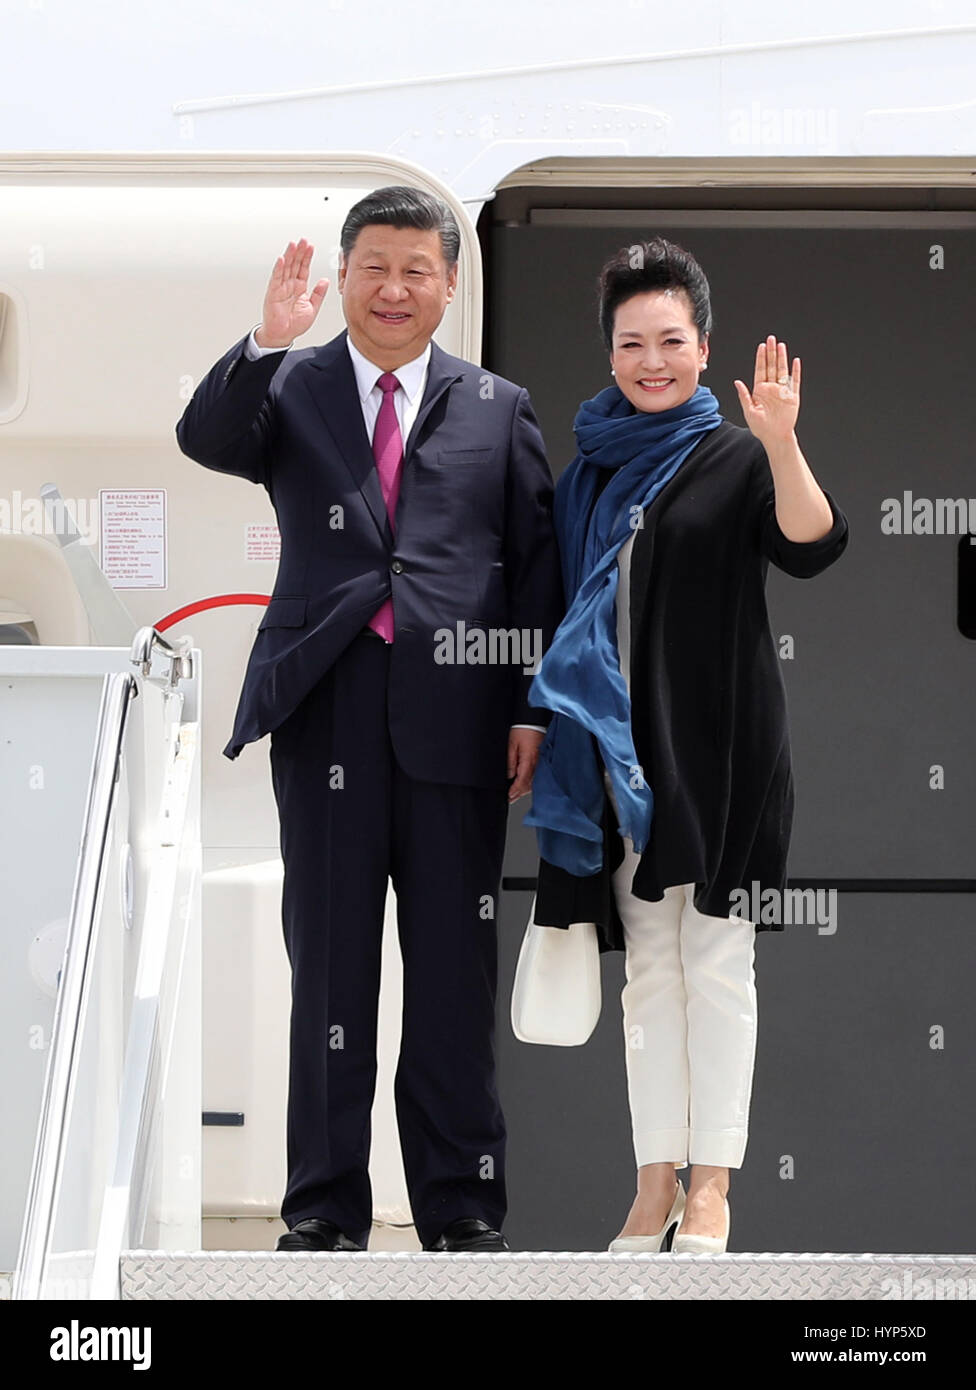 Palm Beach, USA. 6th Apr, 2017. Chinese President Xi Jinping and his wife Peng Liyuan arrive at Palm Beach International - Stock Image